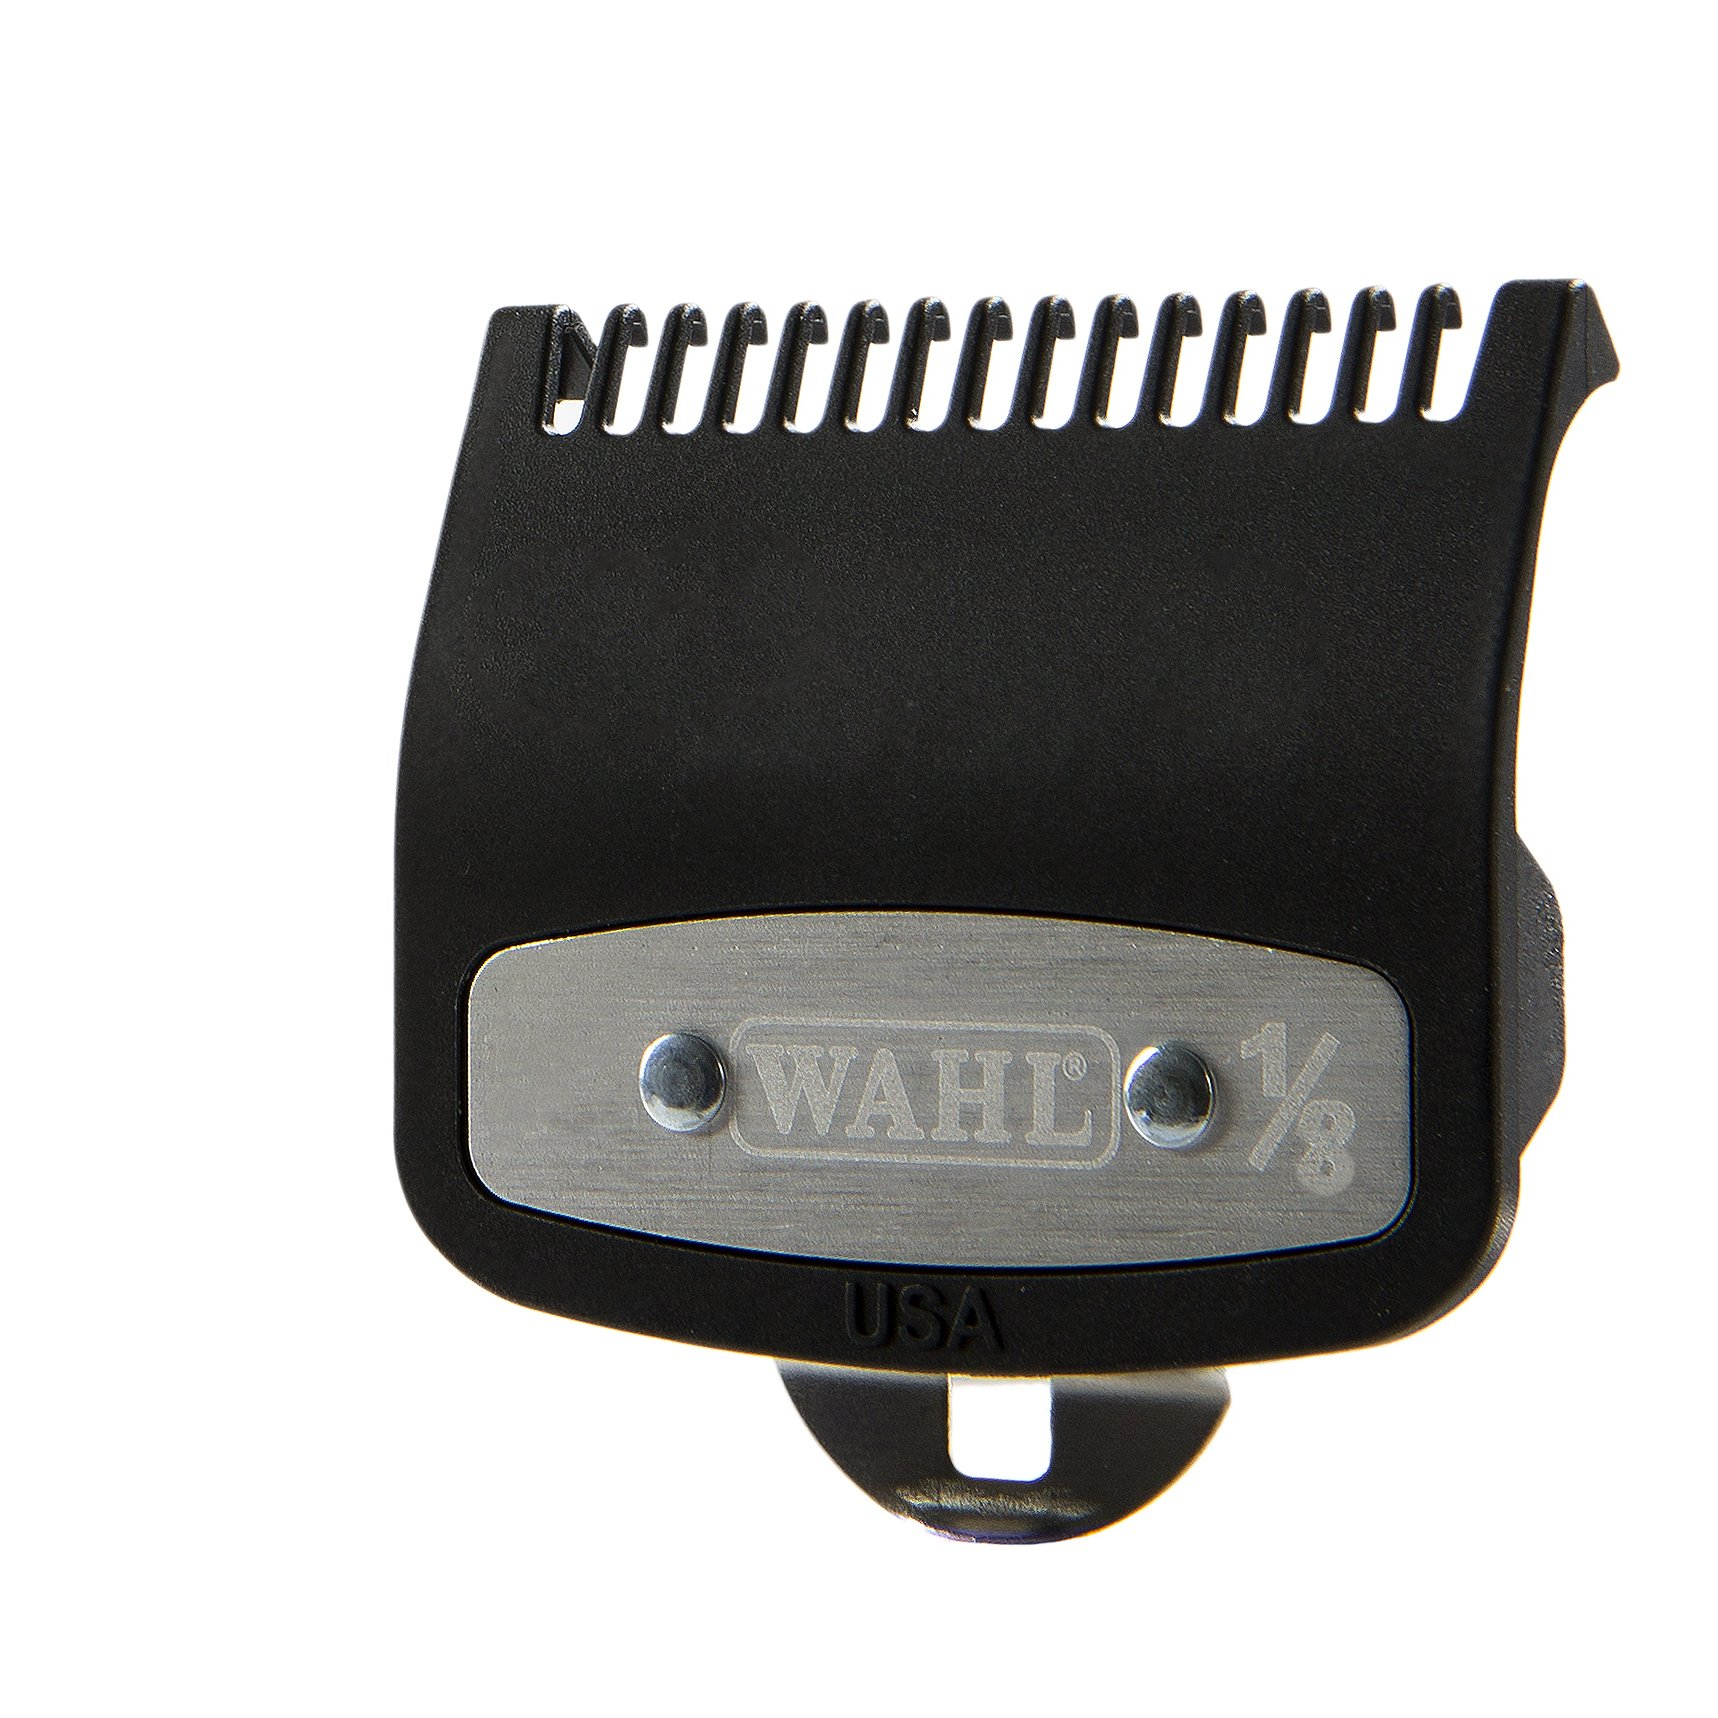 Wahl Professional Premium Cutting Guide with Metal Clip, black